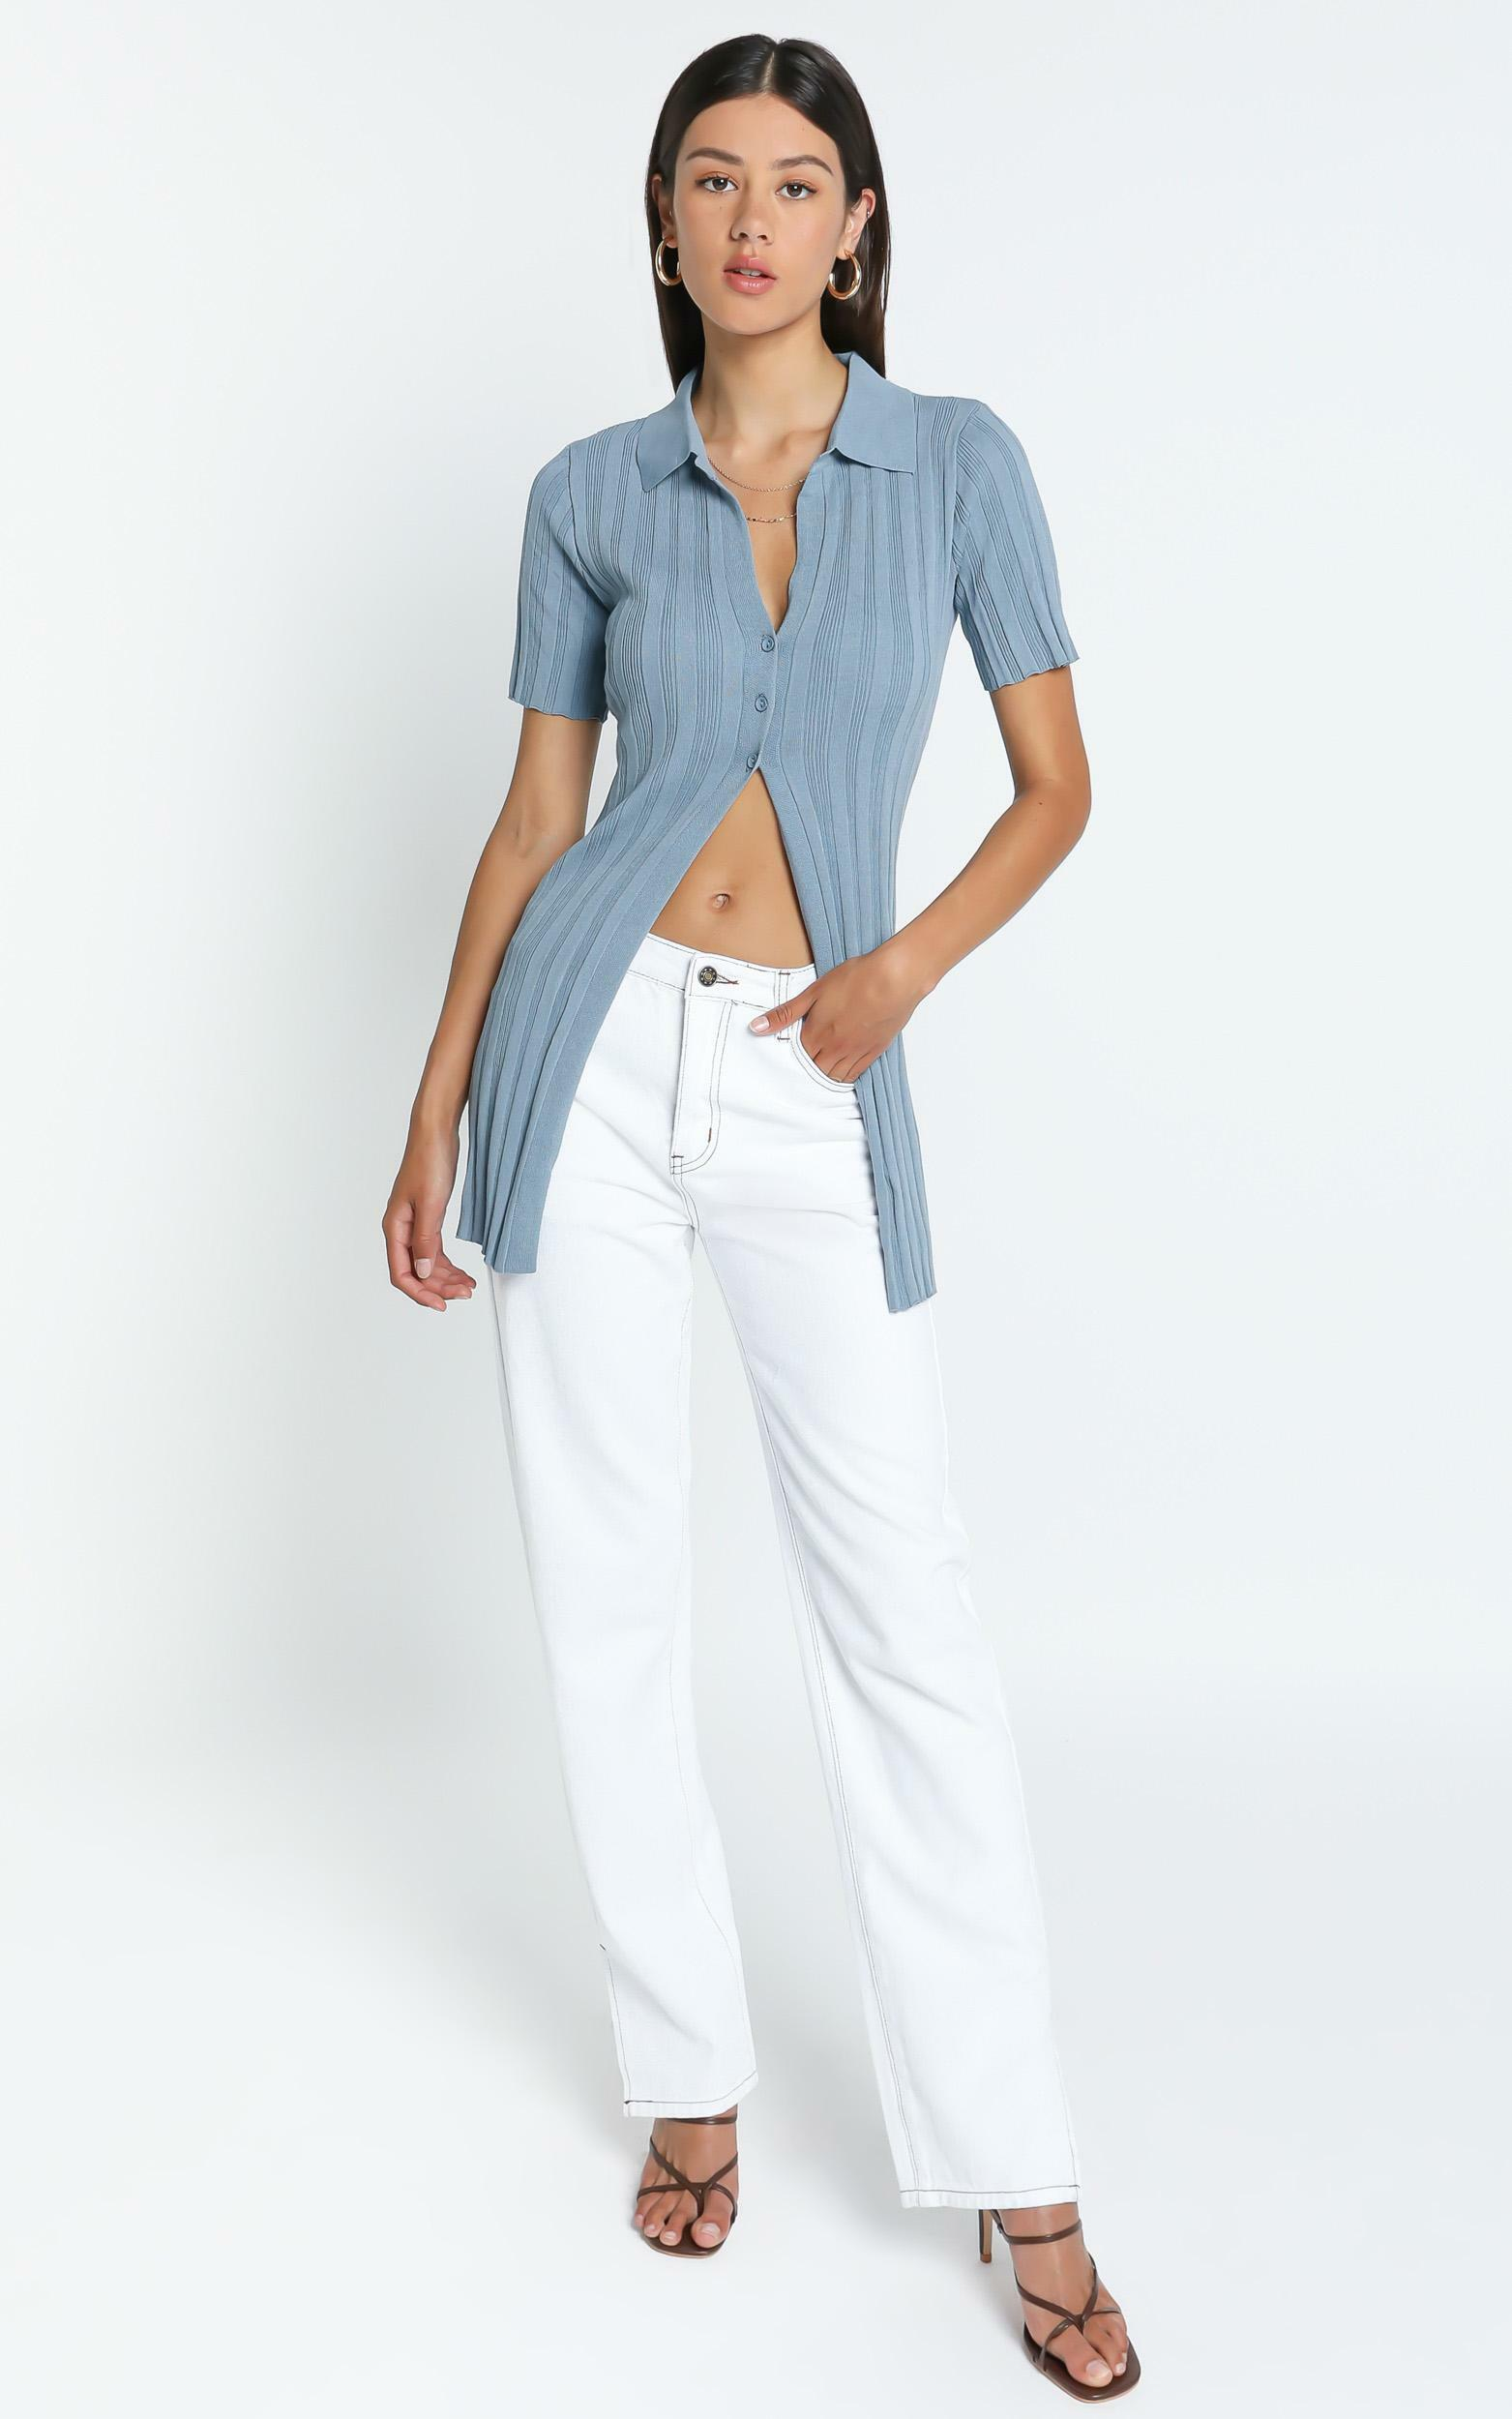 Lioness - Silverlake Cardi Top in Dusty Blue - 4 (XXS), BLU1, hi-res image number null